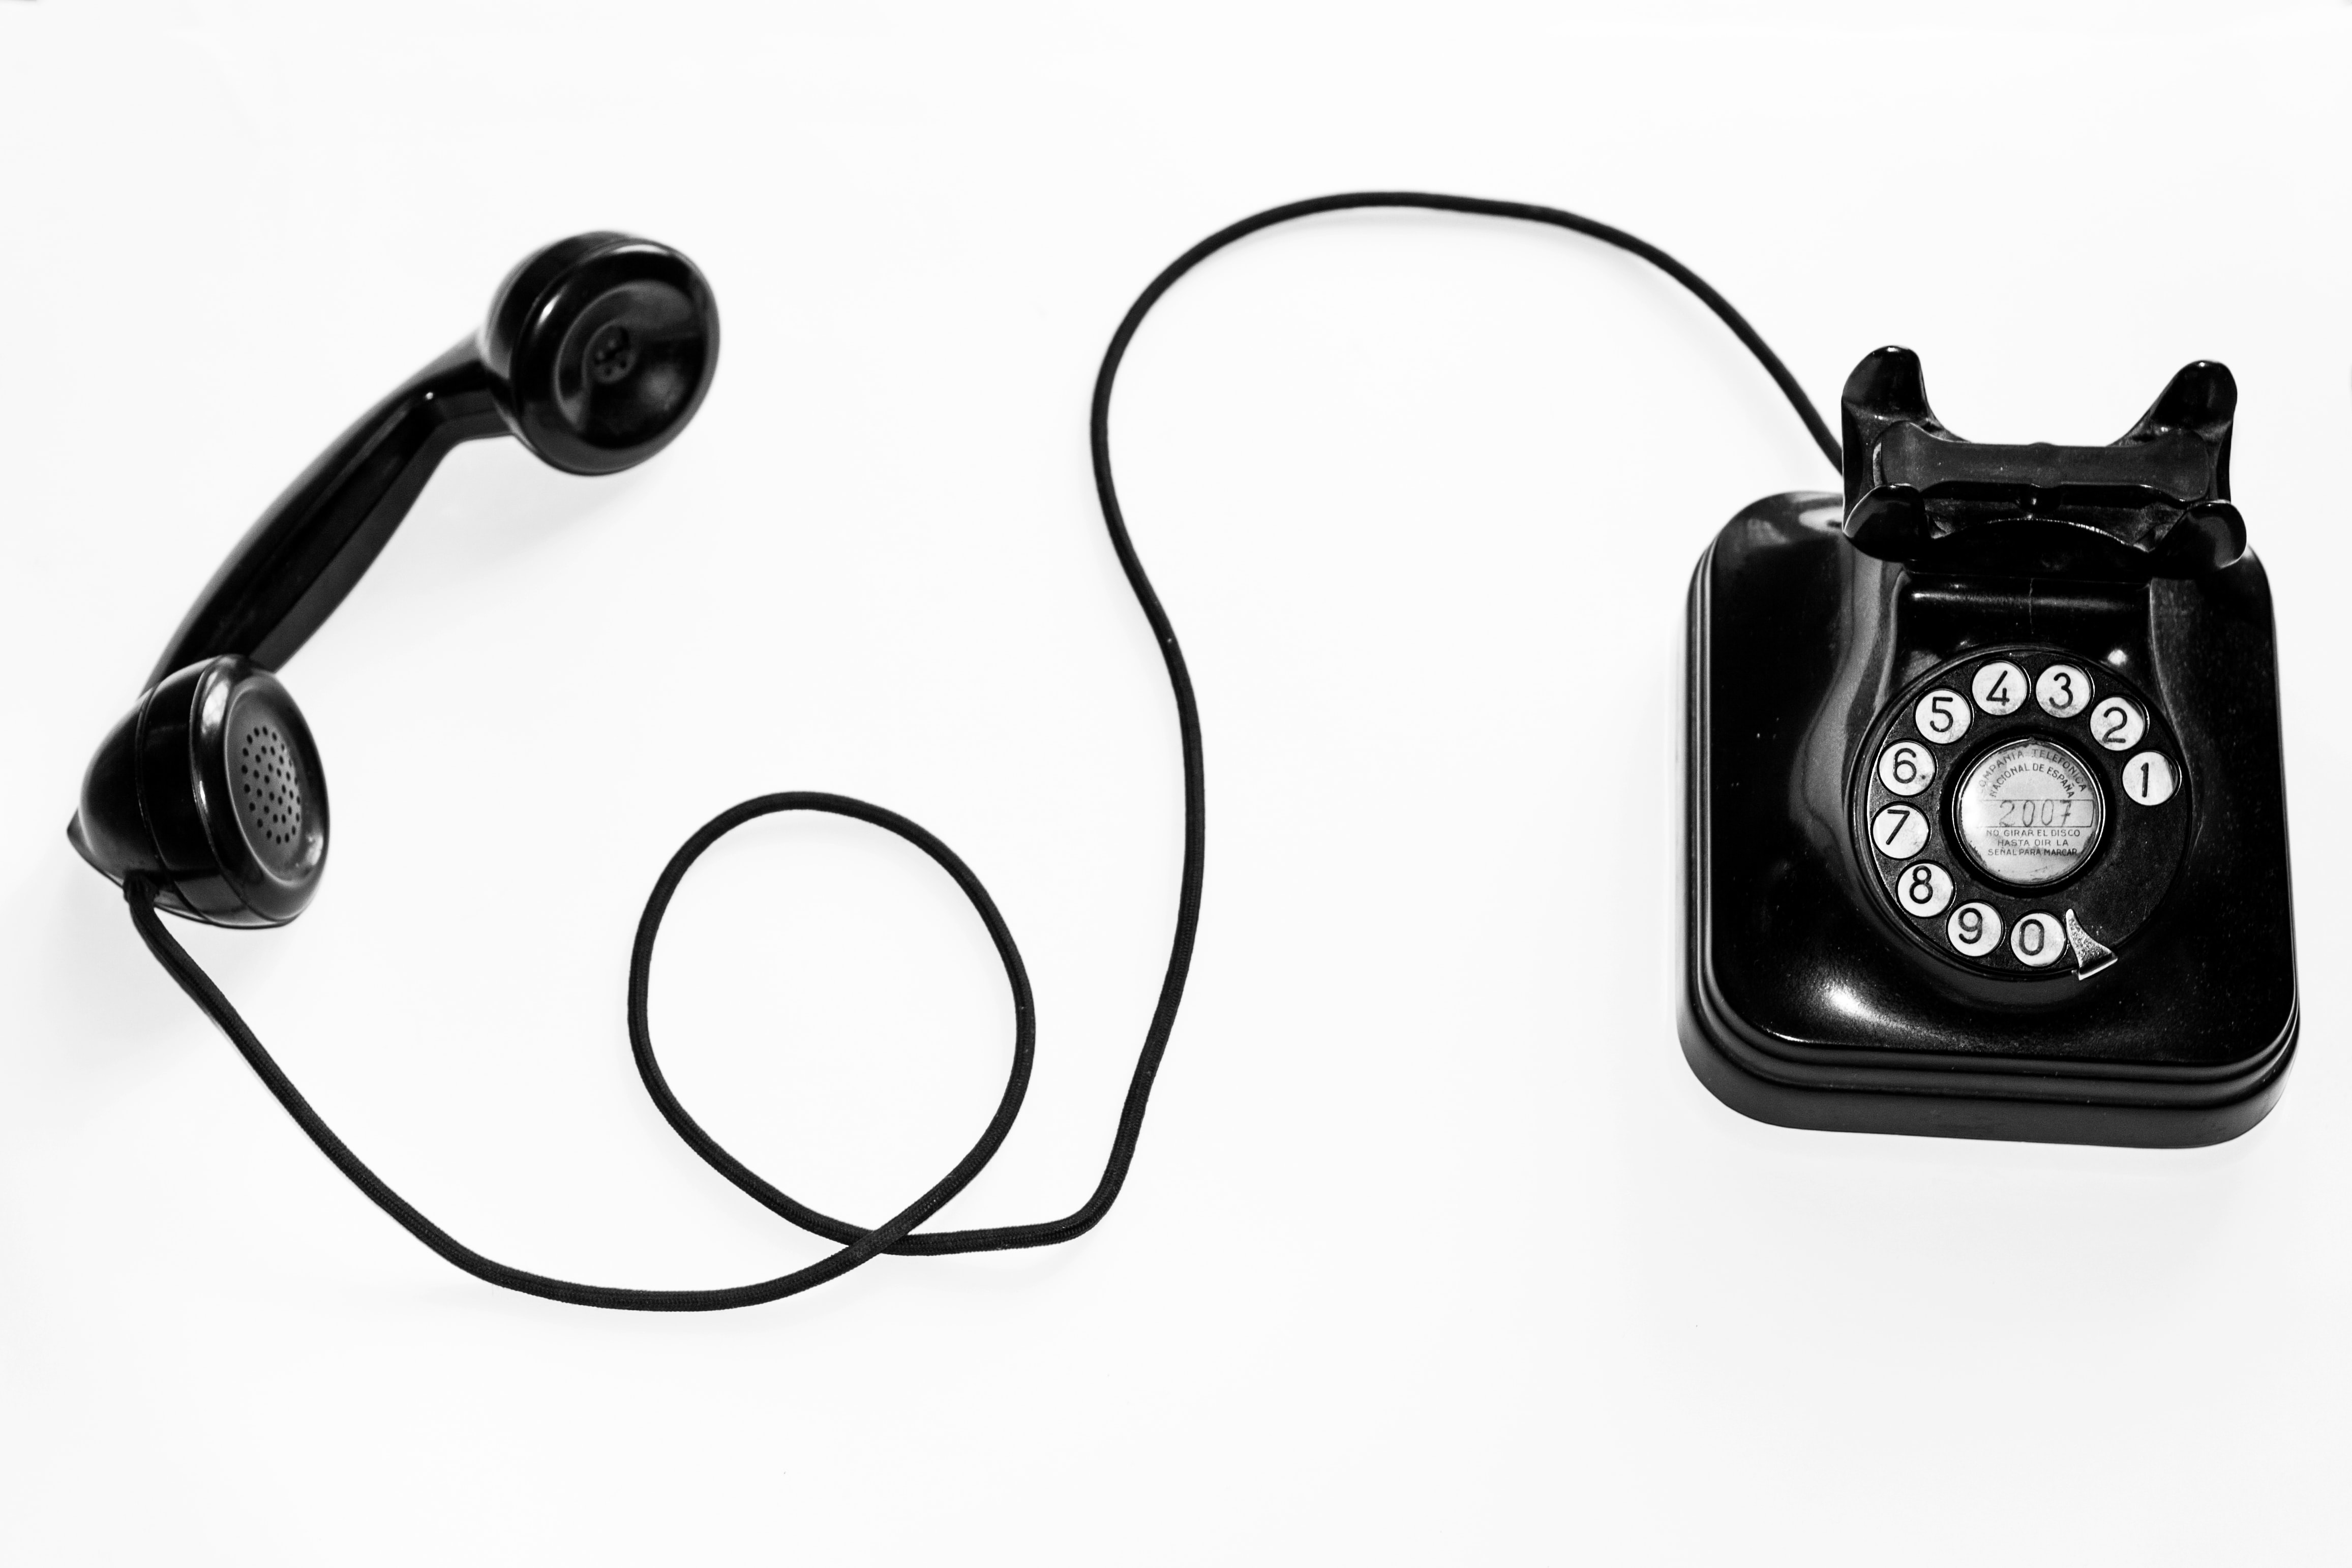 photo of black rotary phone against white background